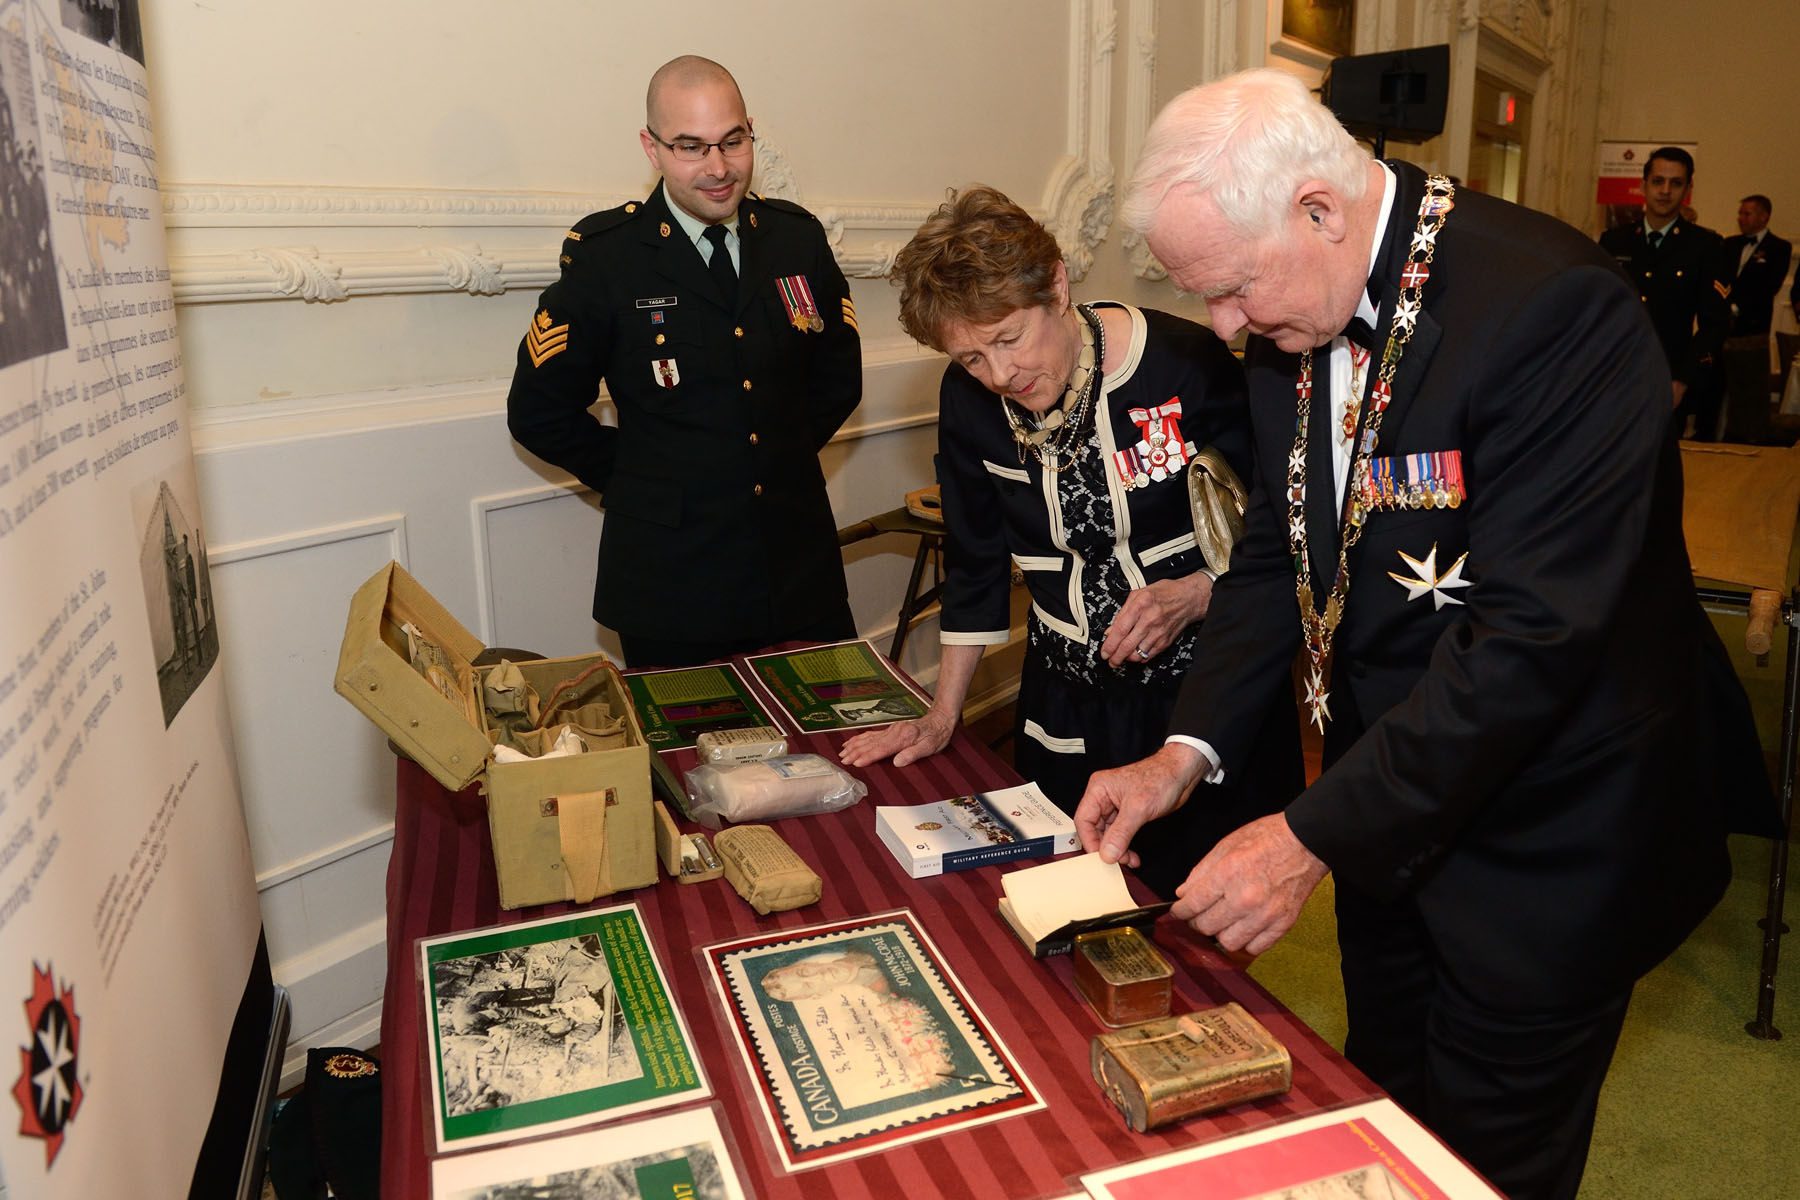 Their Excellencies toured a modern-day military first aid post and a display commemorating St. John Ambulance's contributions during the First World War.